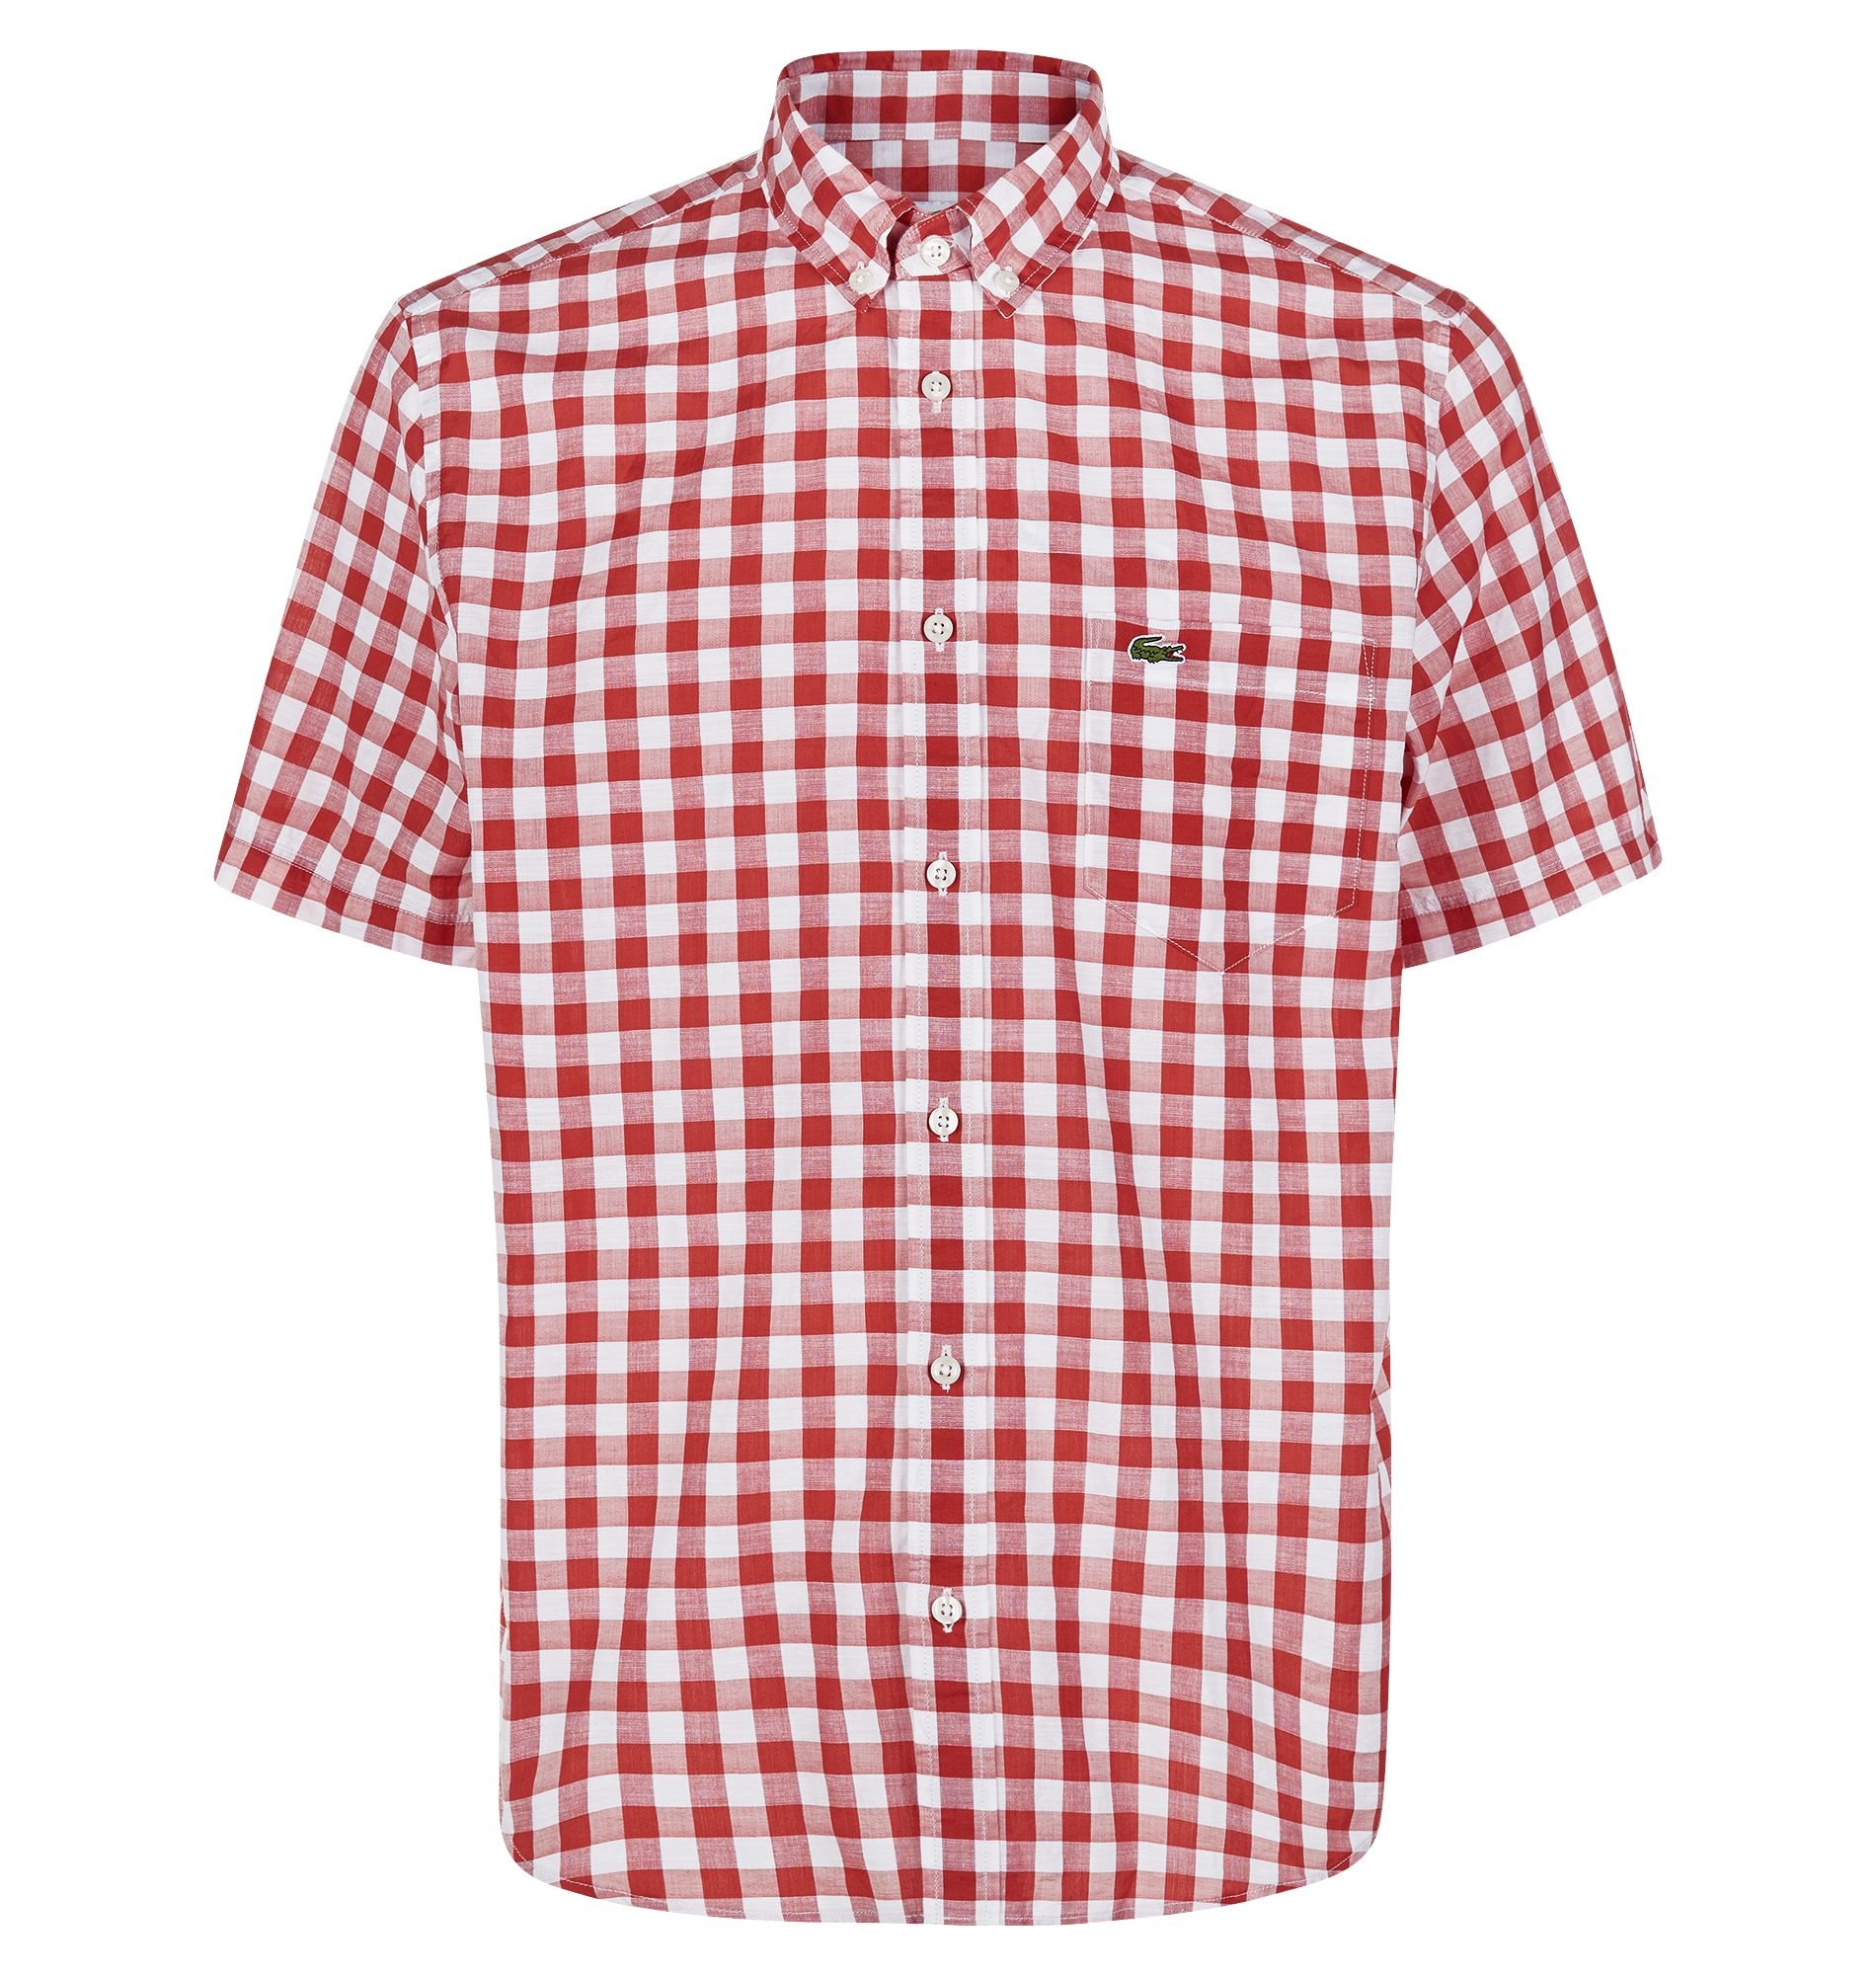 Lacoste Gingham Short Sleeve Button Down Shirt In Orange